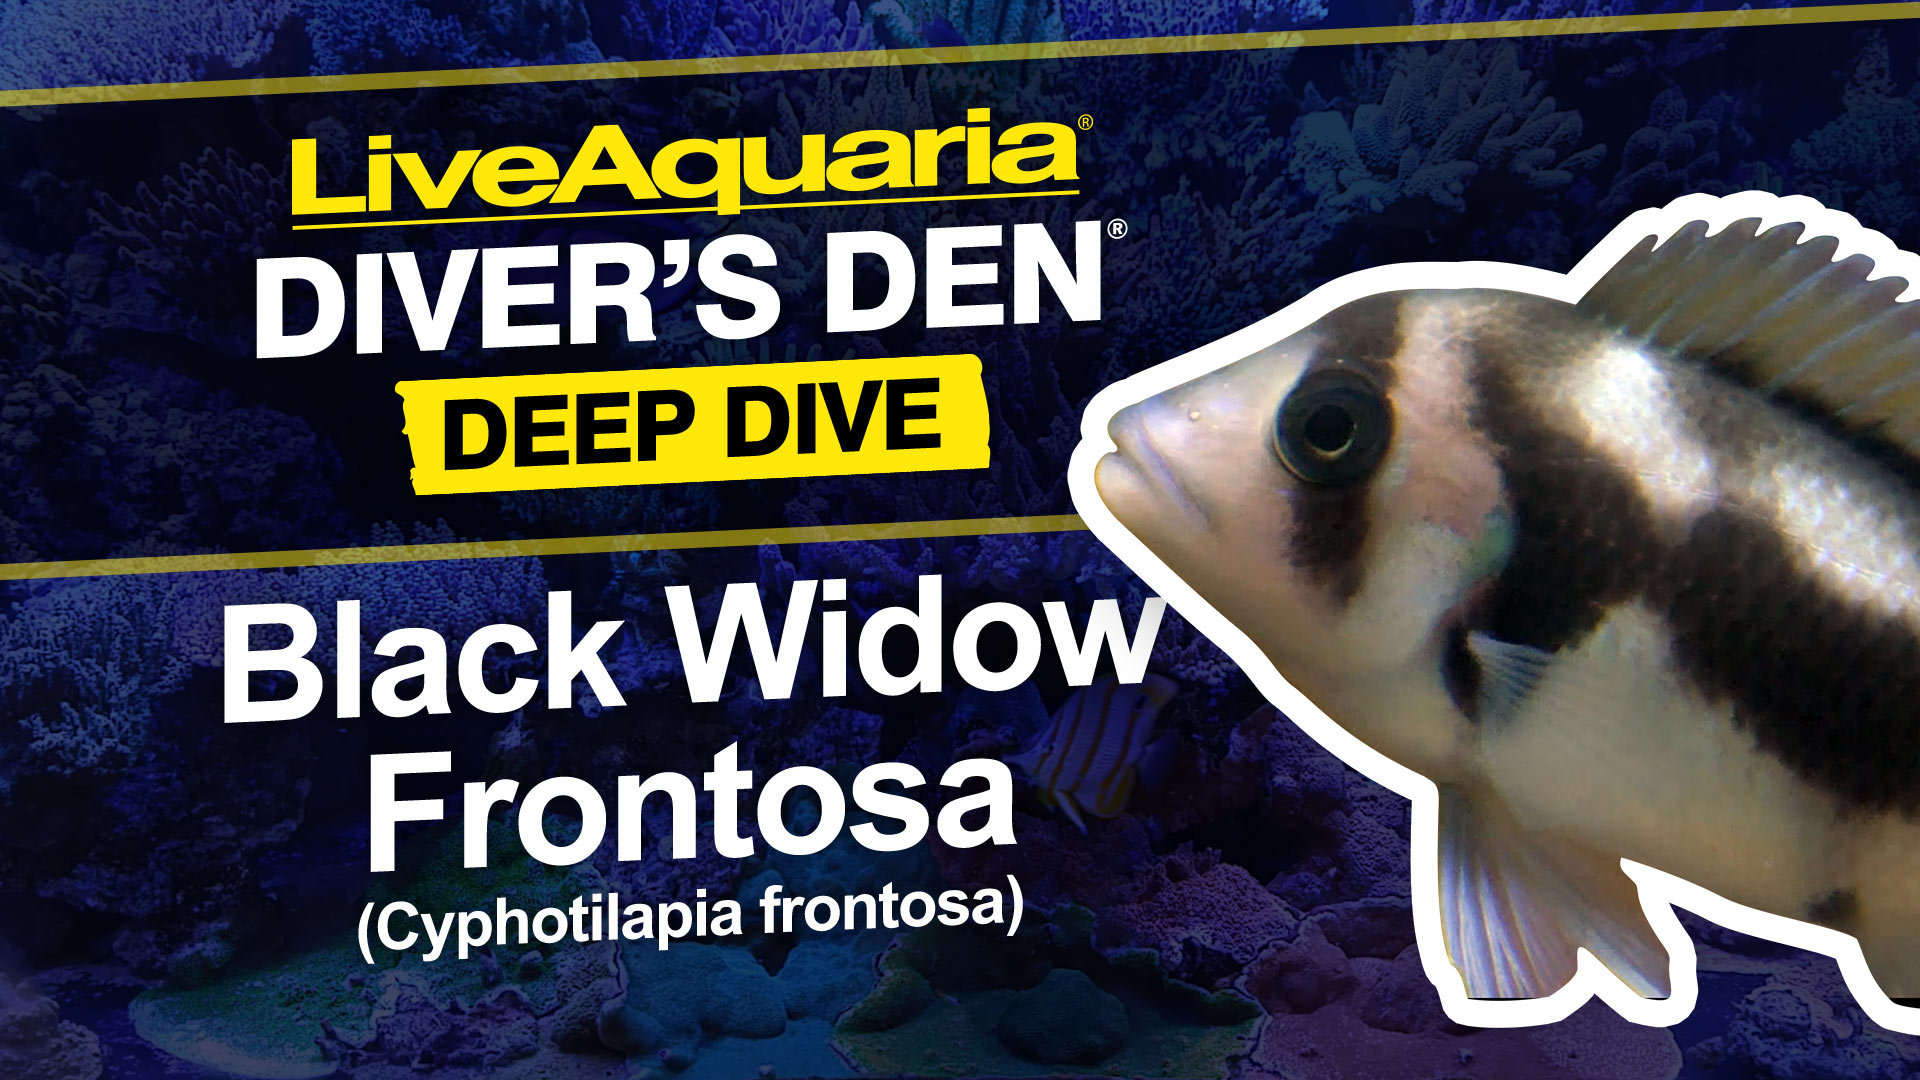 Black Widow Froontosa